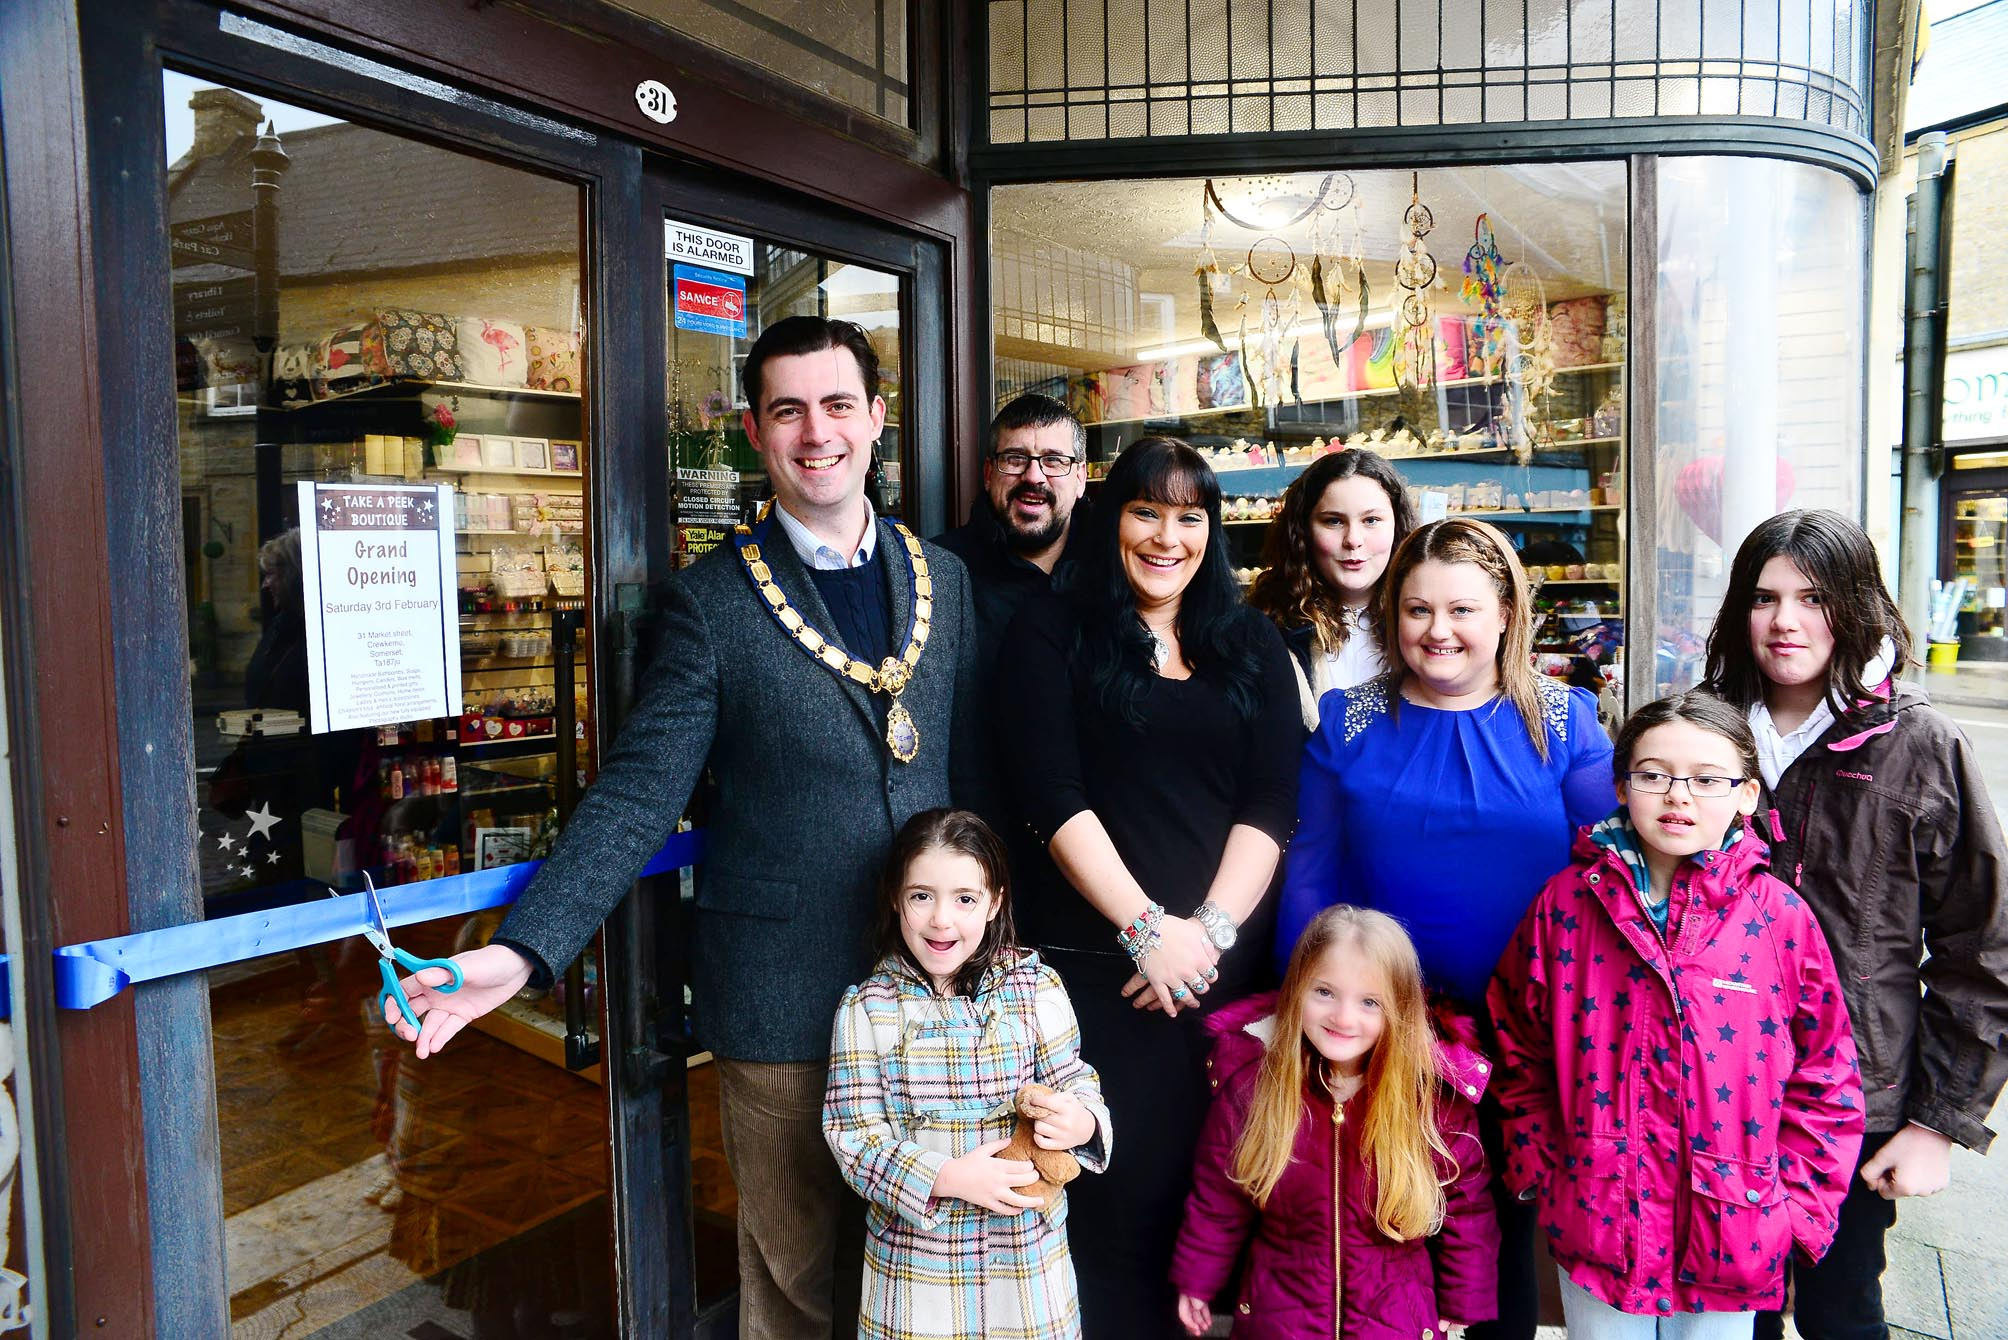 Crewkerne couple launch boutique business in the town's 'main attraction'